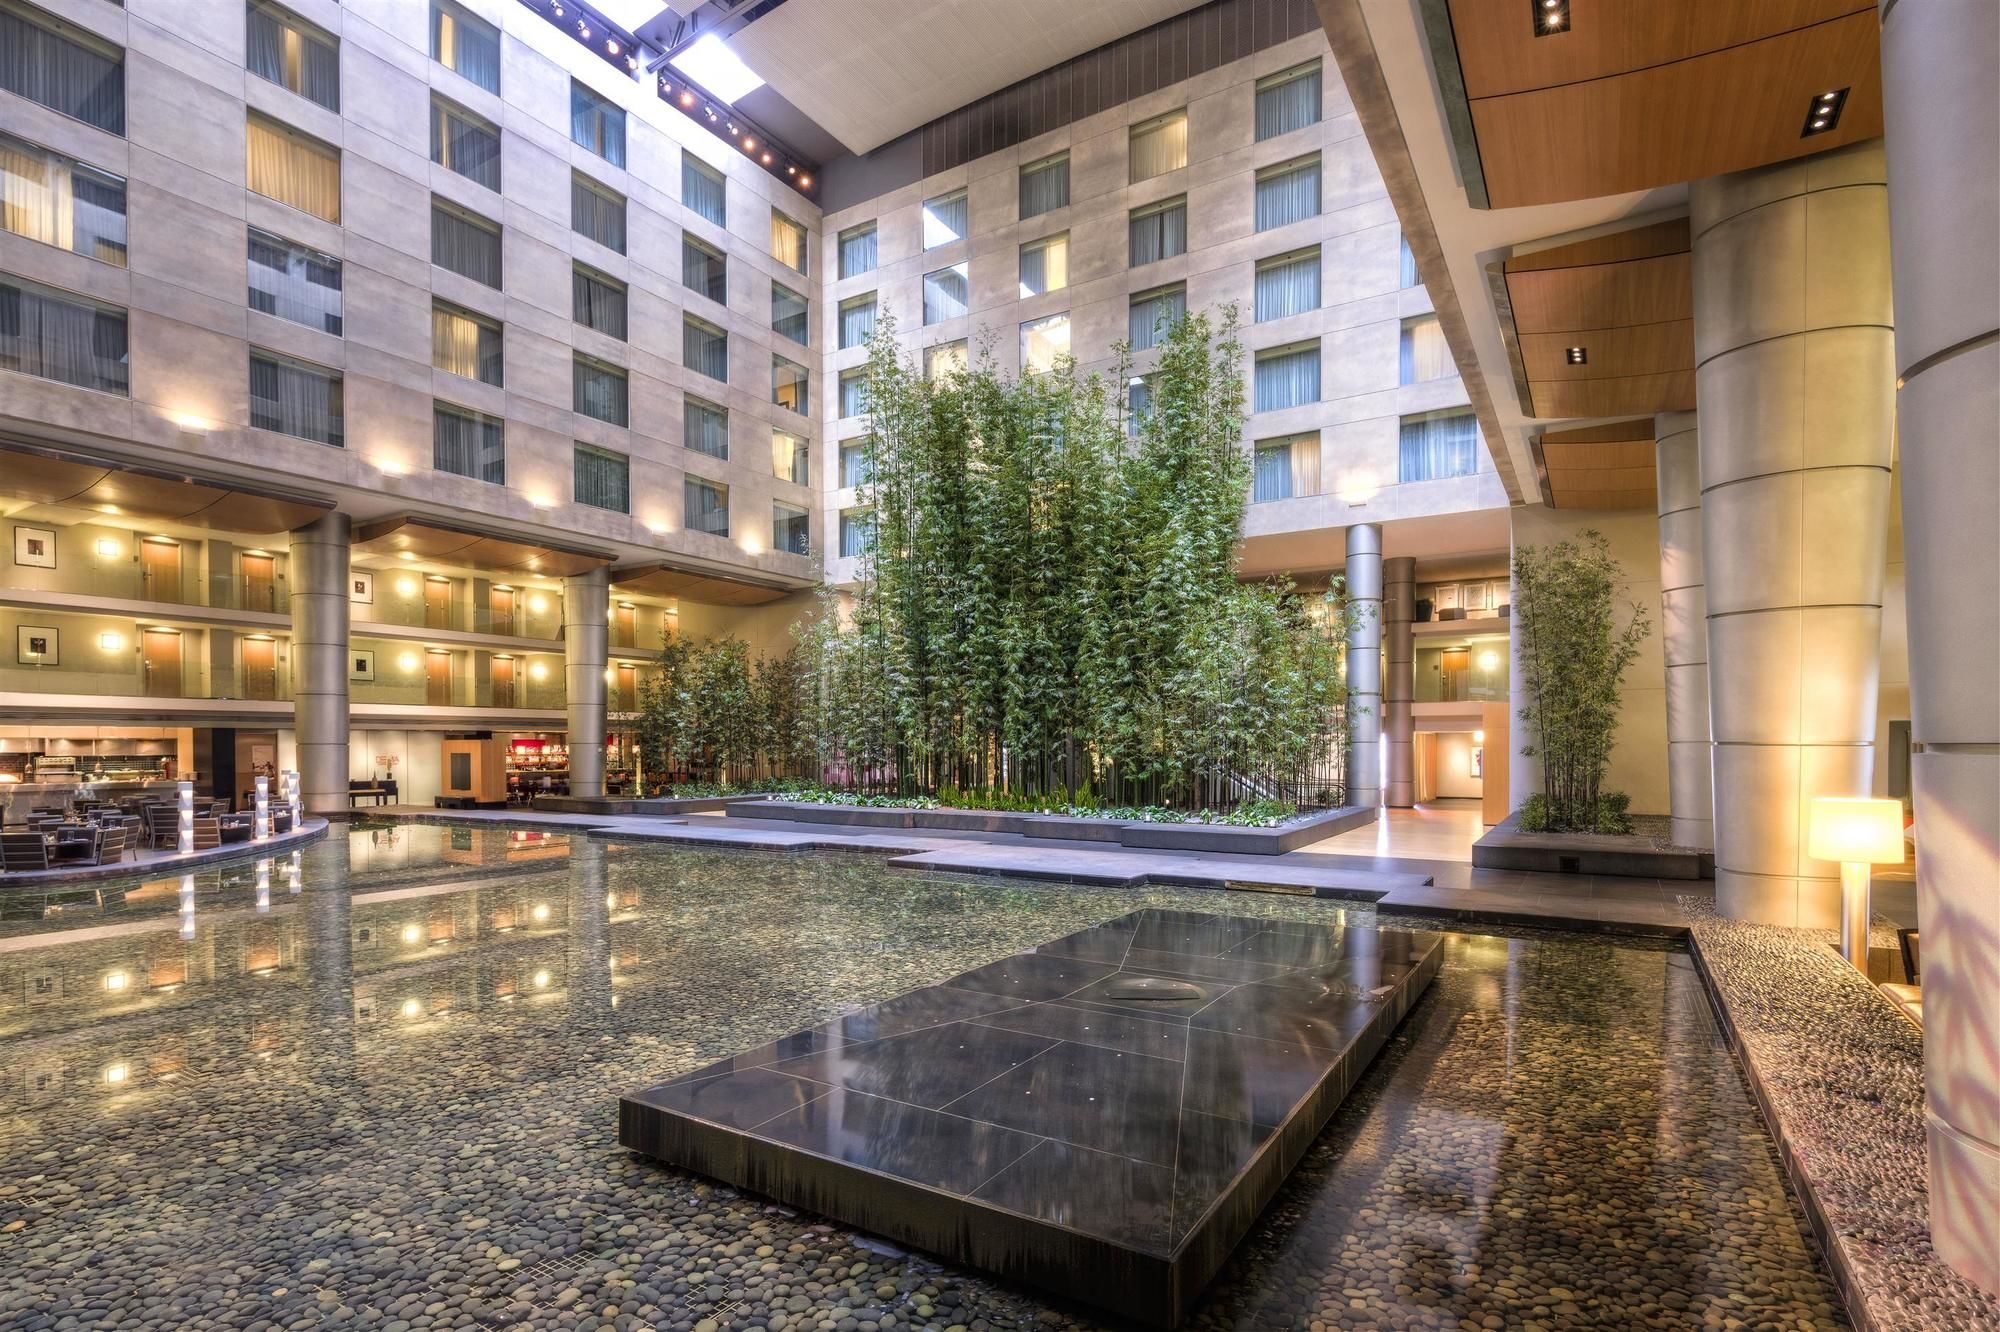 Westin Hotels and Hotel deals, discounts and special offers.